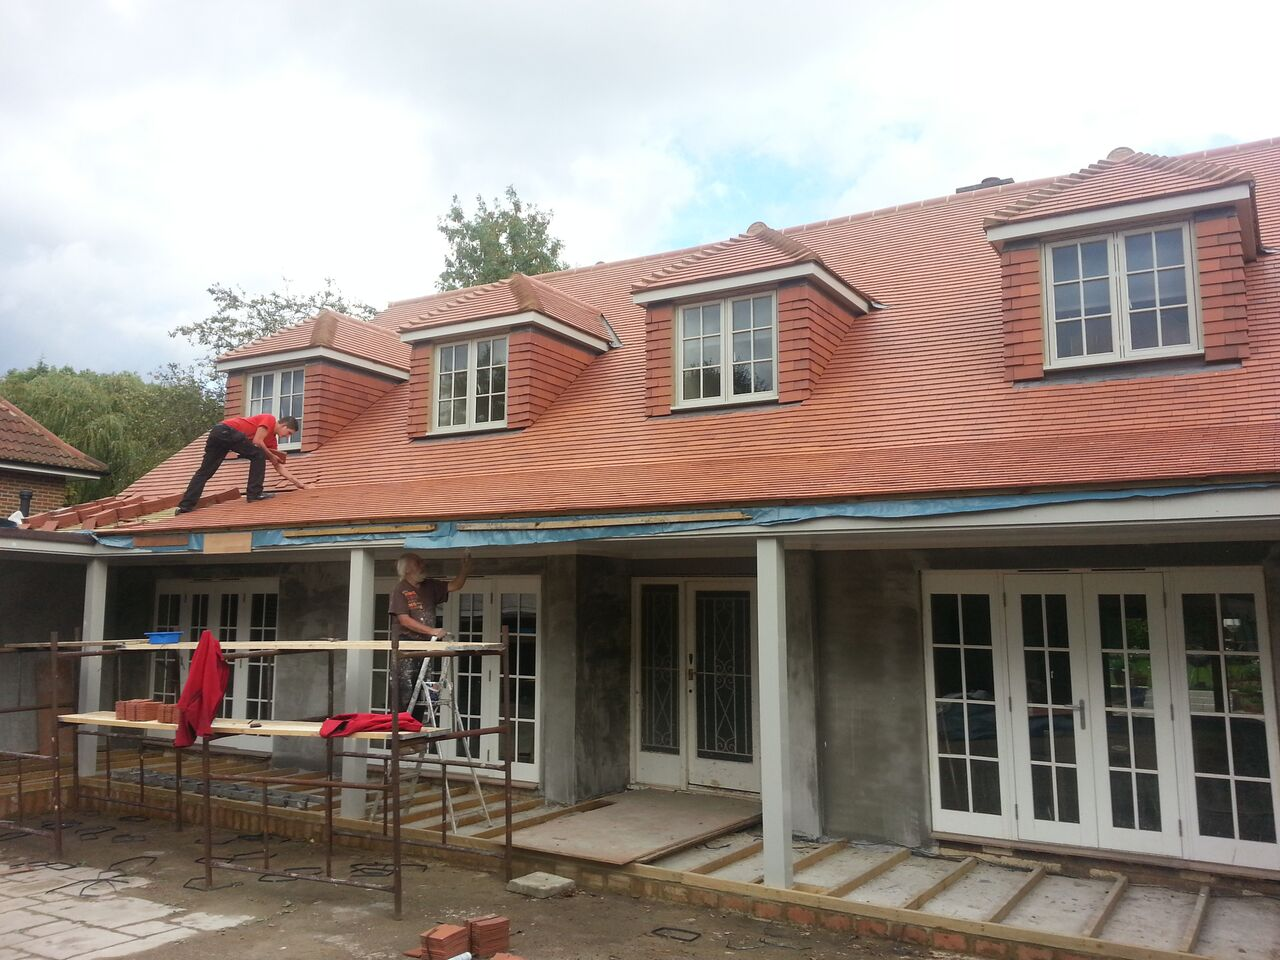 About Us - The Original Roofing Company - Based In Croydon, South London